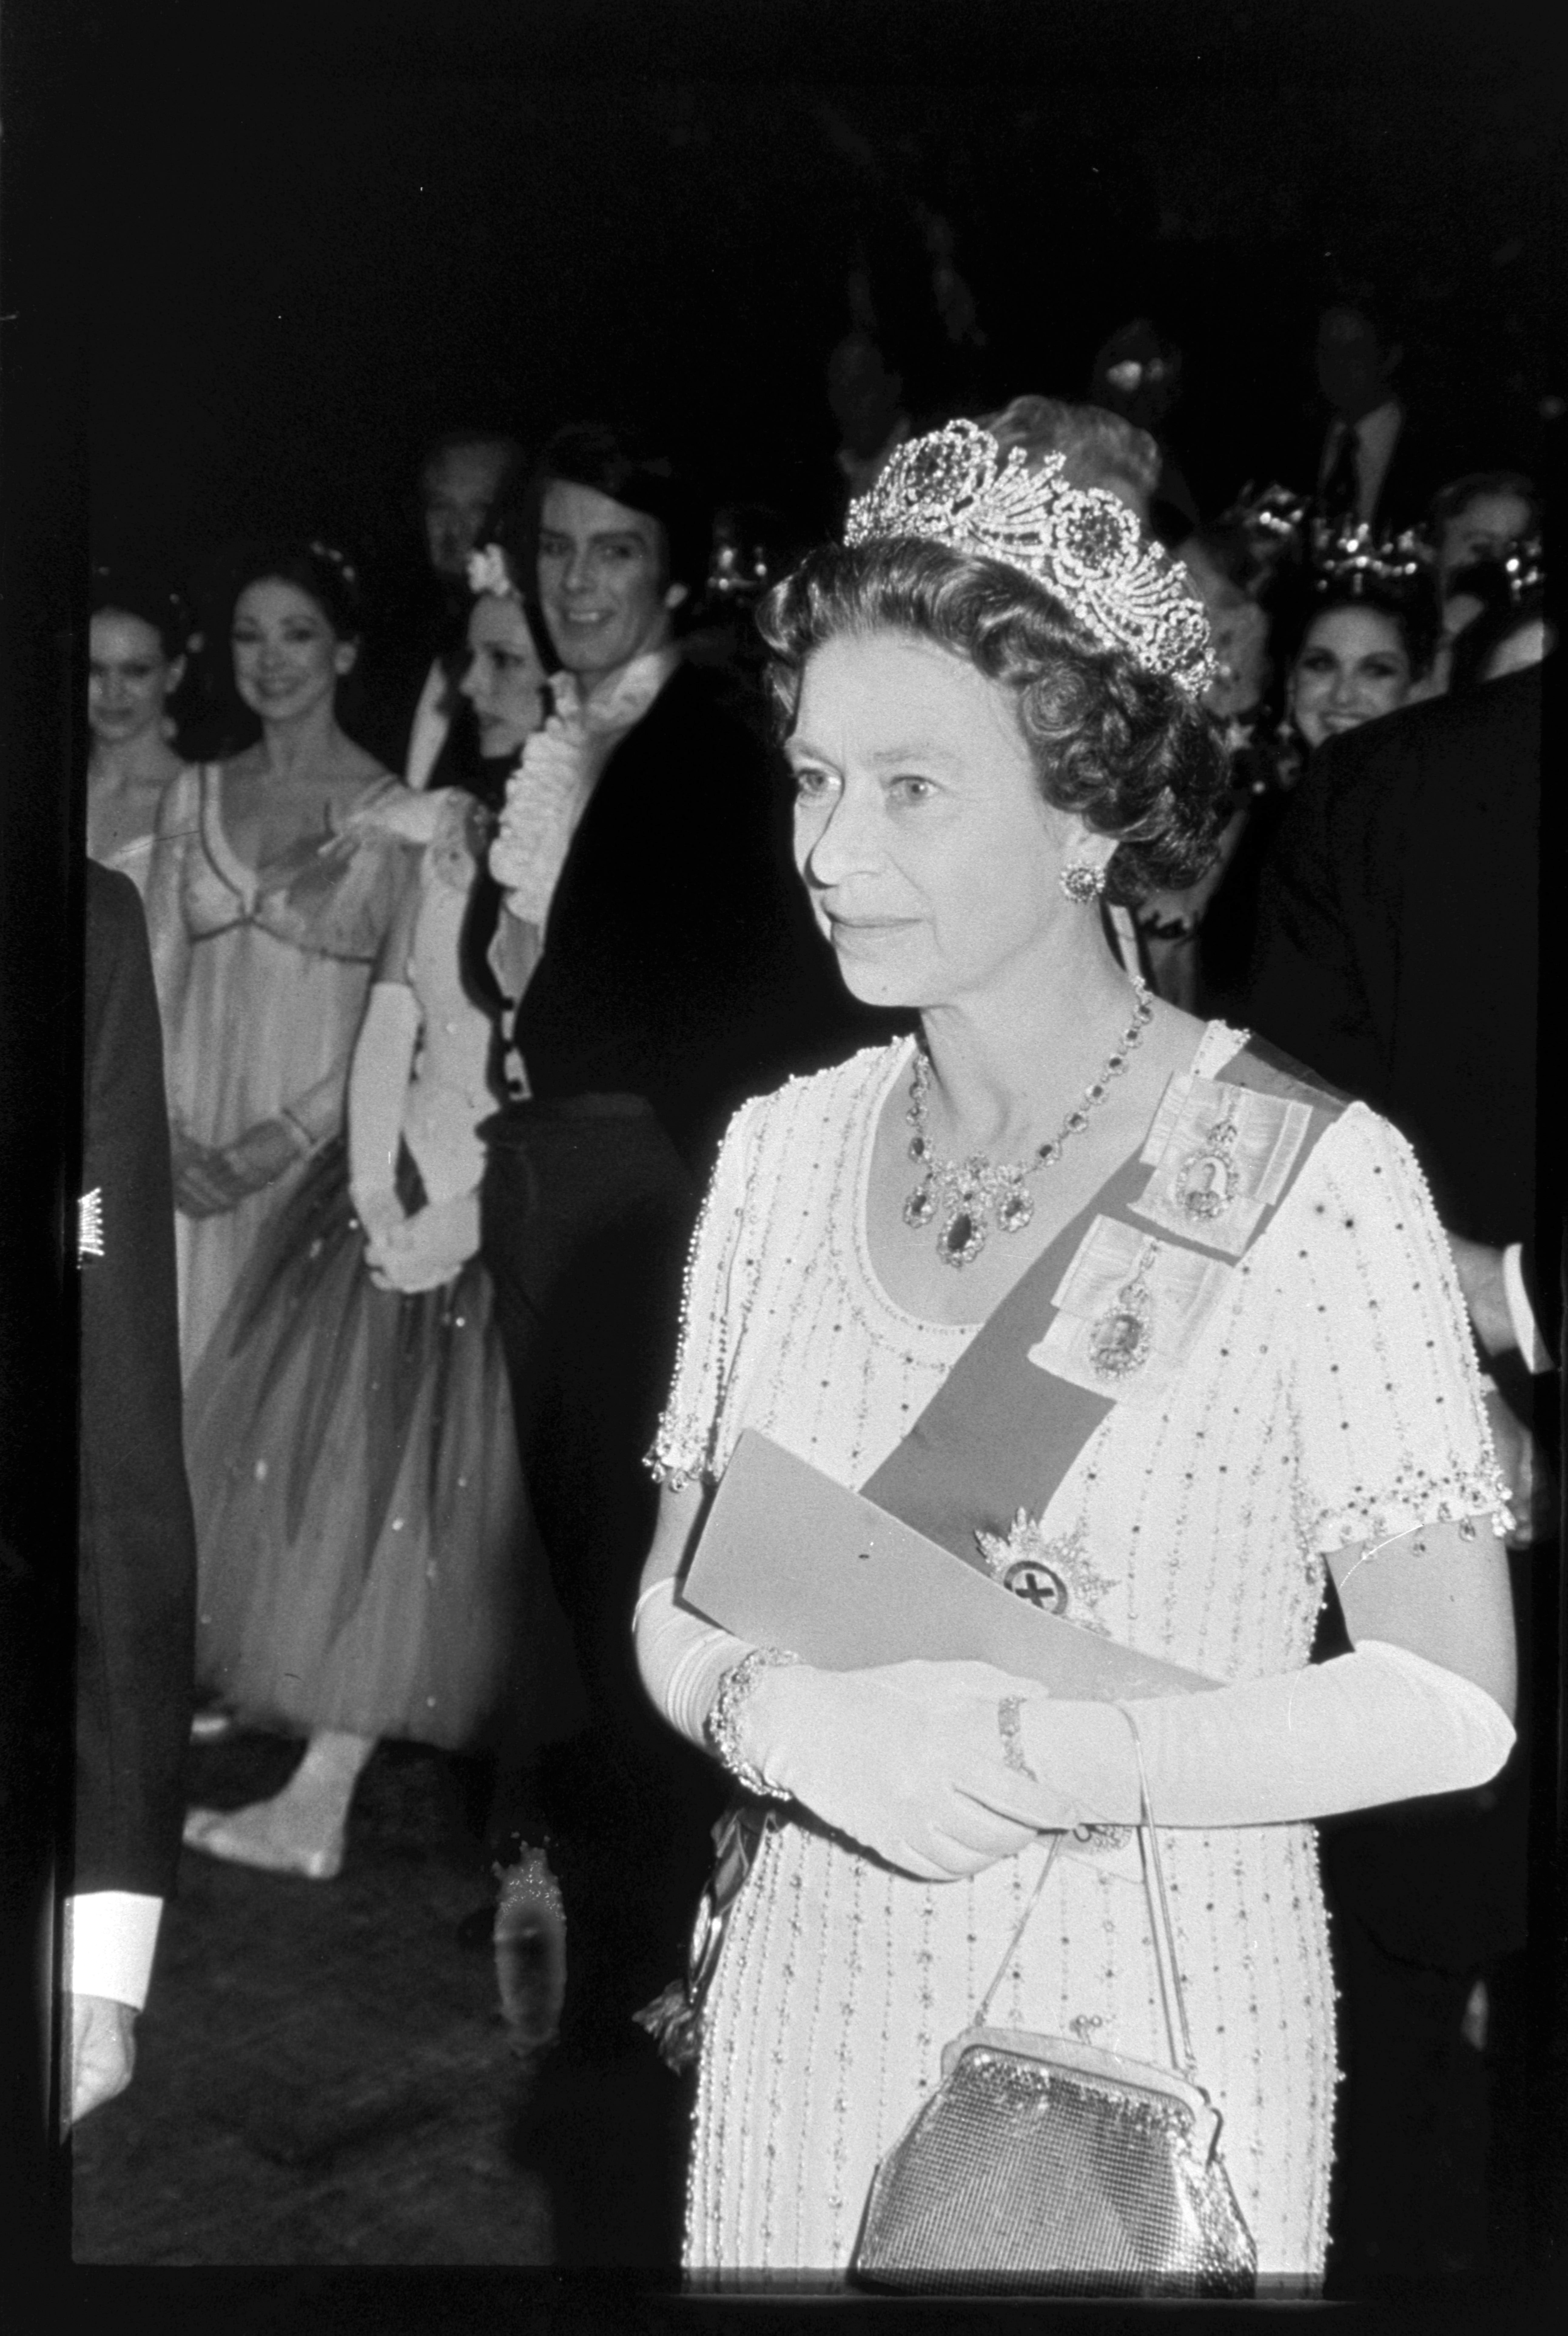 Photos of Queen Elizabeth II from the Fairchild Fashion Archives